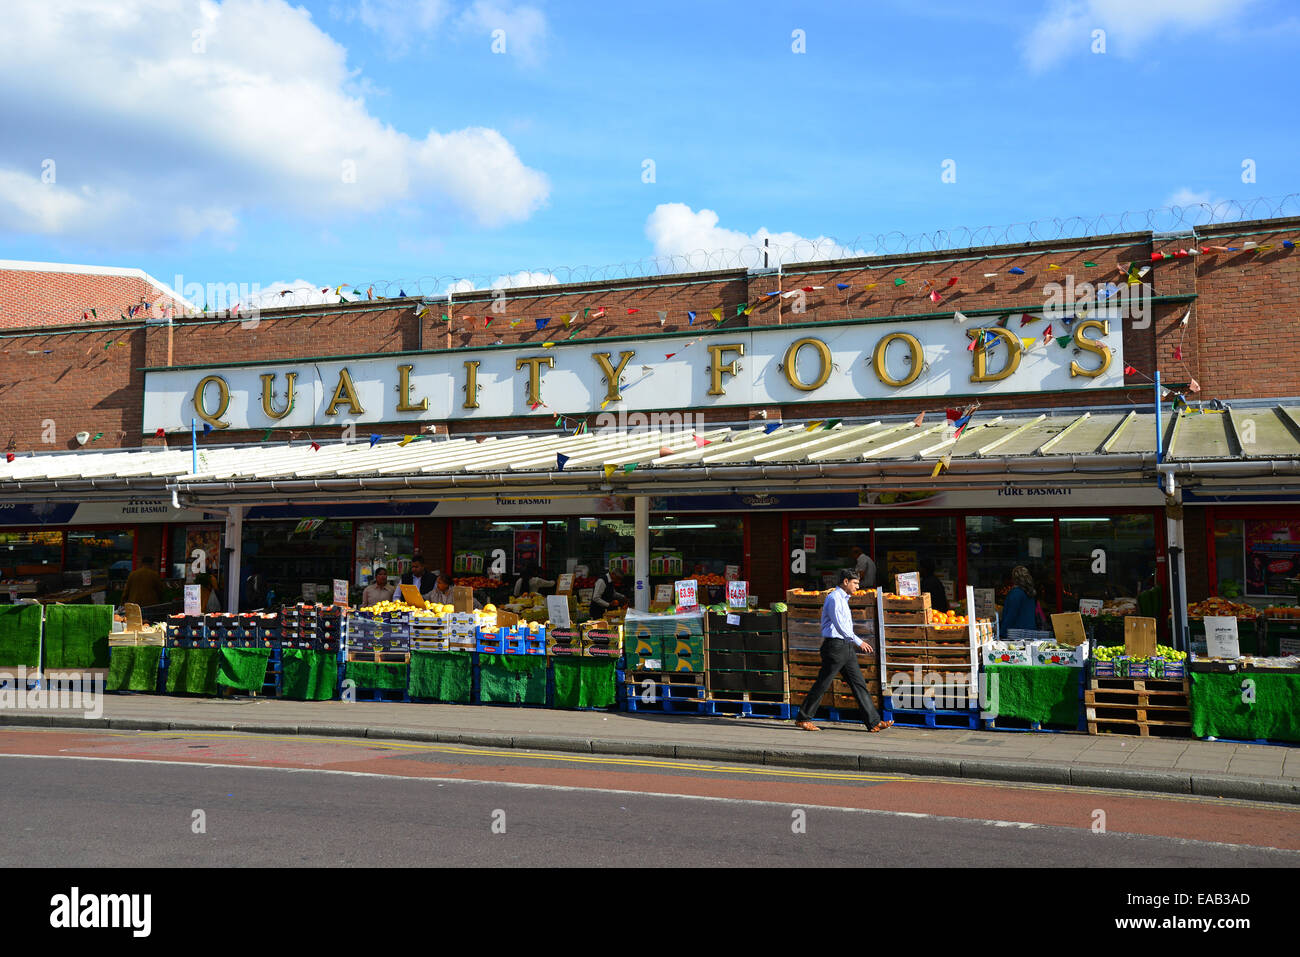 Des stands de nourriture de qualité, South Street, Southall, London Borough of Ealing, Greater London, Angleterre, Photo Stock